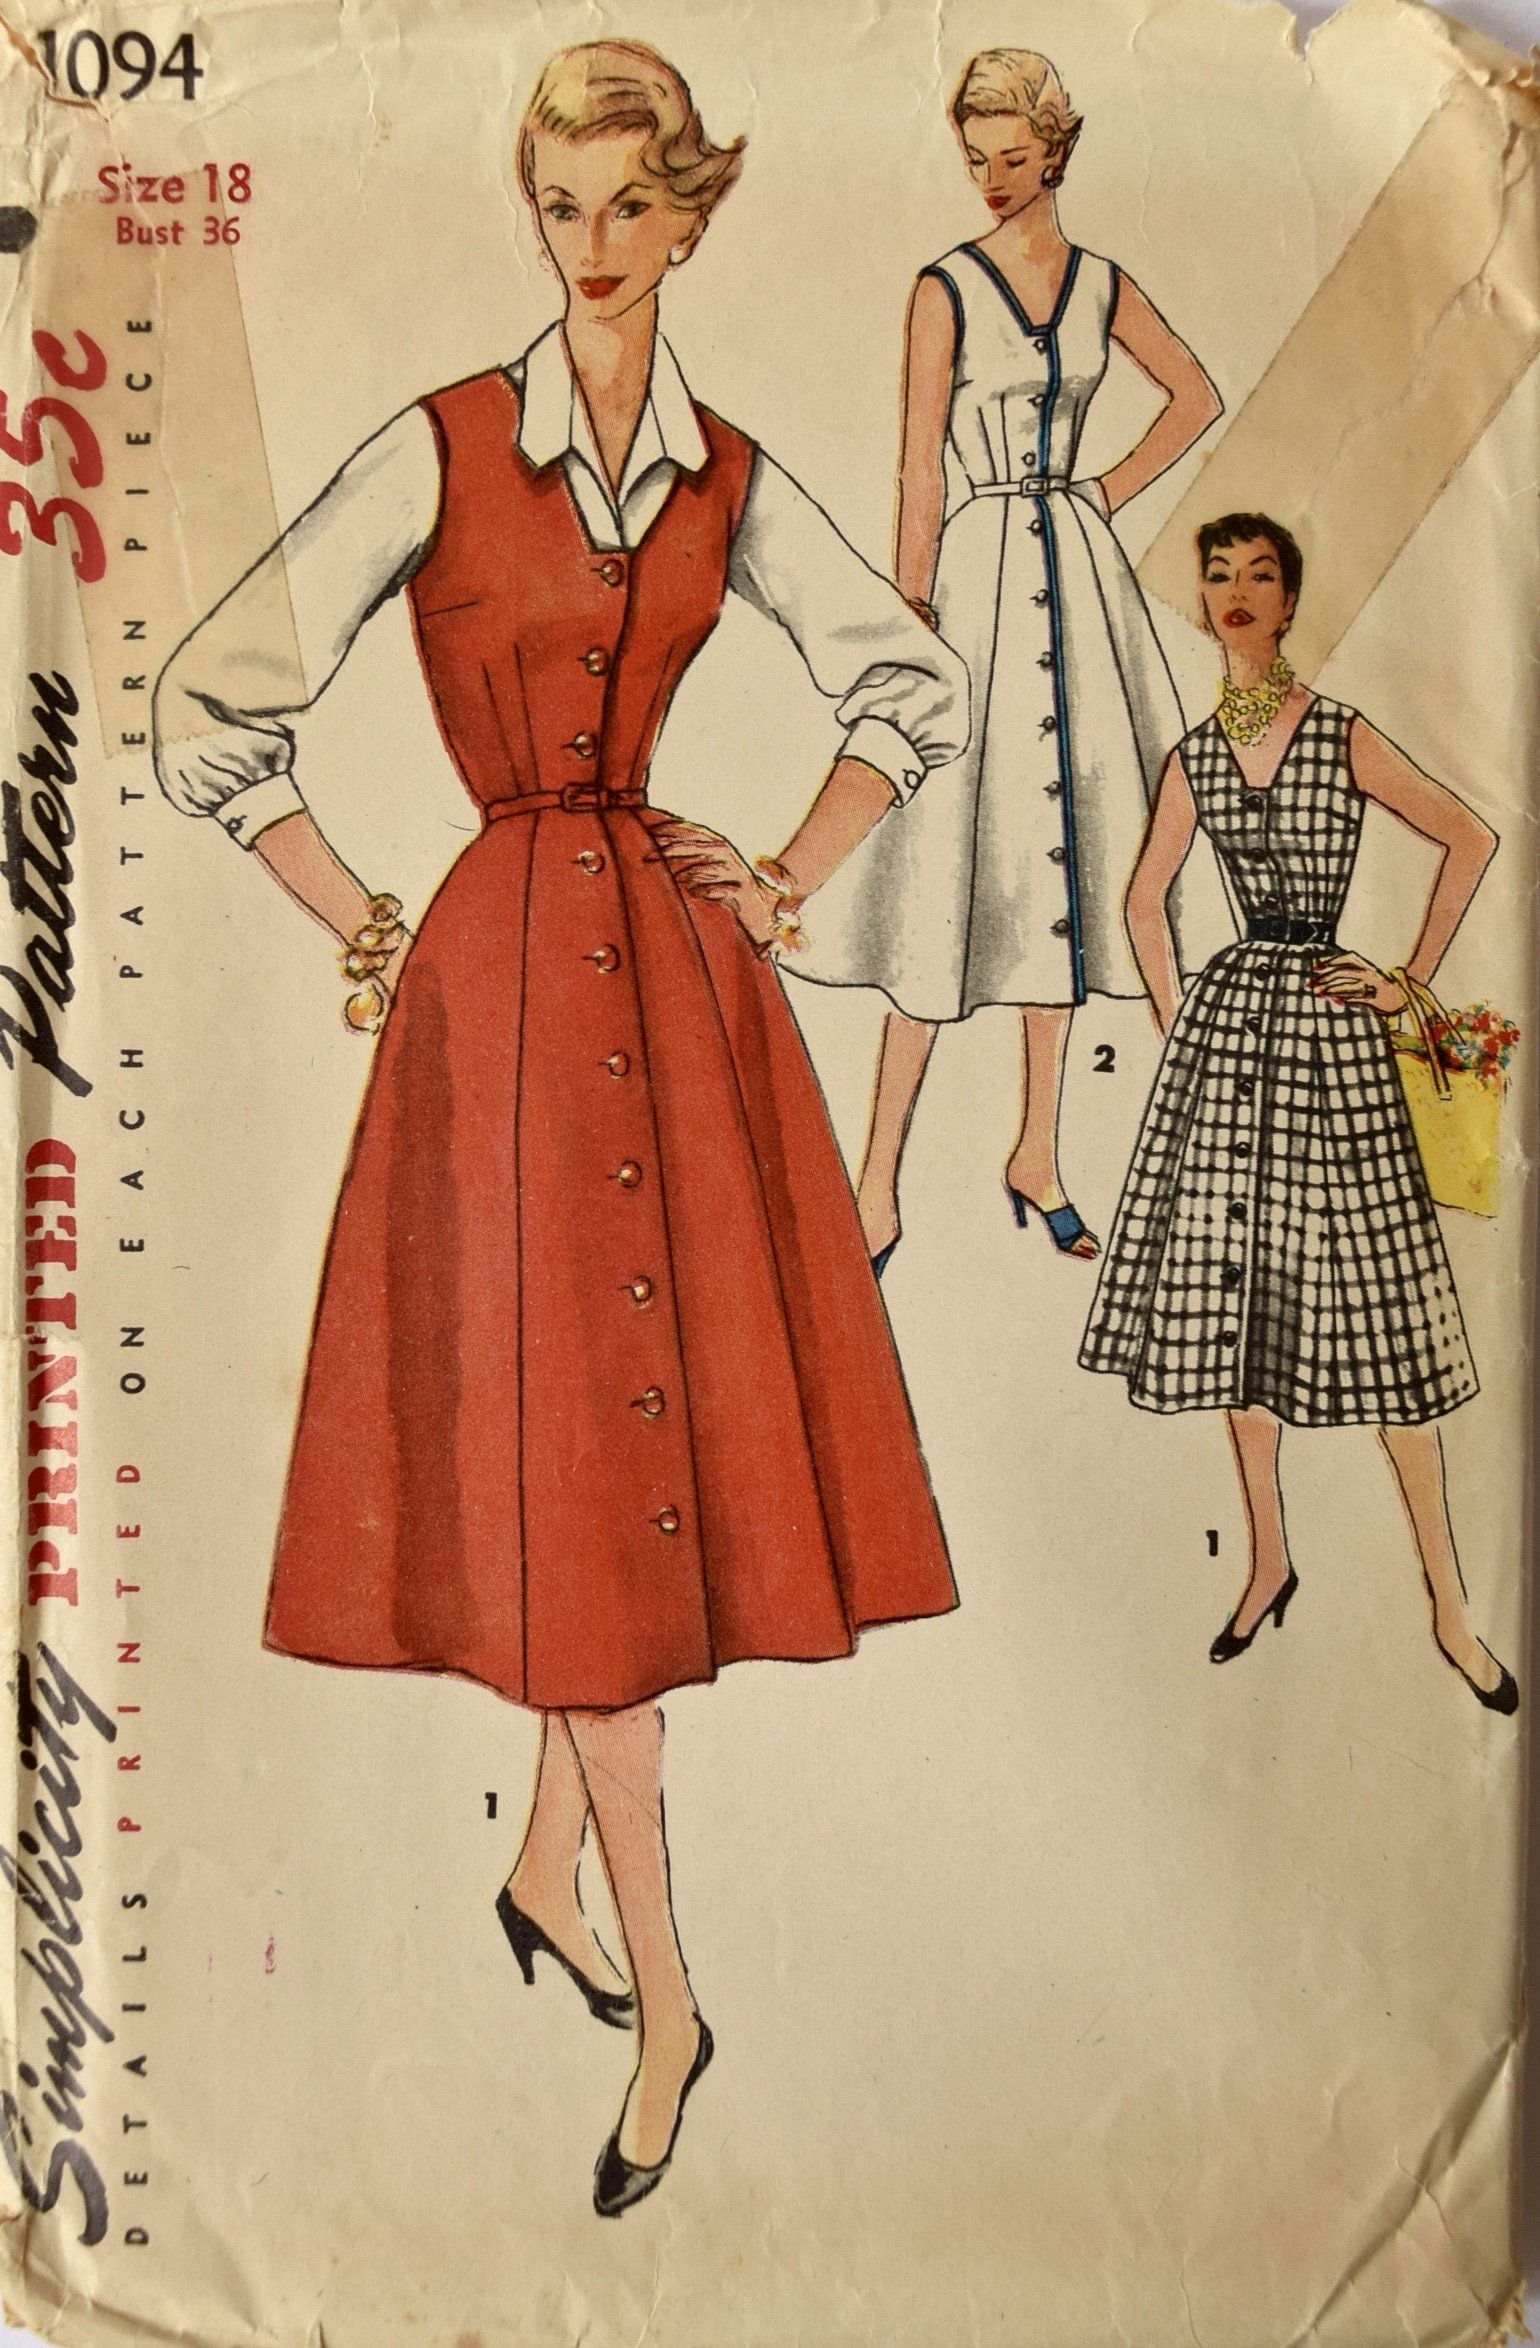 fbe6ca28ac20 Simplicity 1094 Sewing Pattern 1950s Dress Pattern V-Neck Sleeveless Button  Front 7-Gore Skirt Jumper and Blouse Bust 36